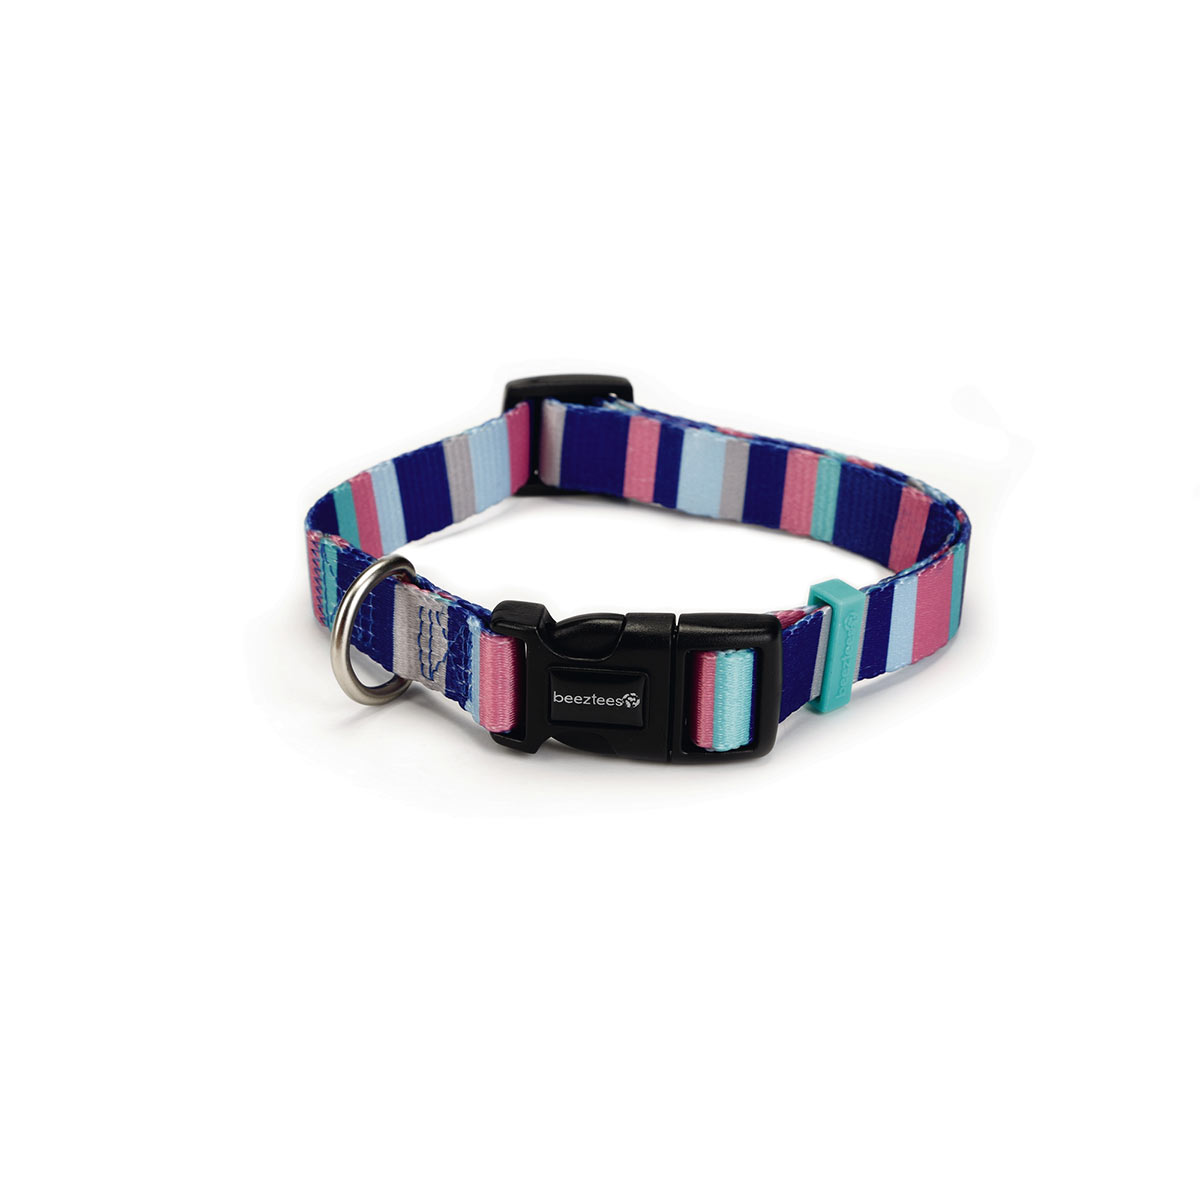 Beeztees Stripes nylonhalsband 35-50 cm x 20 mm